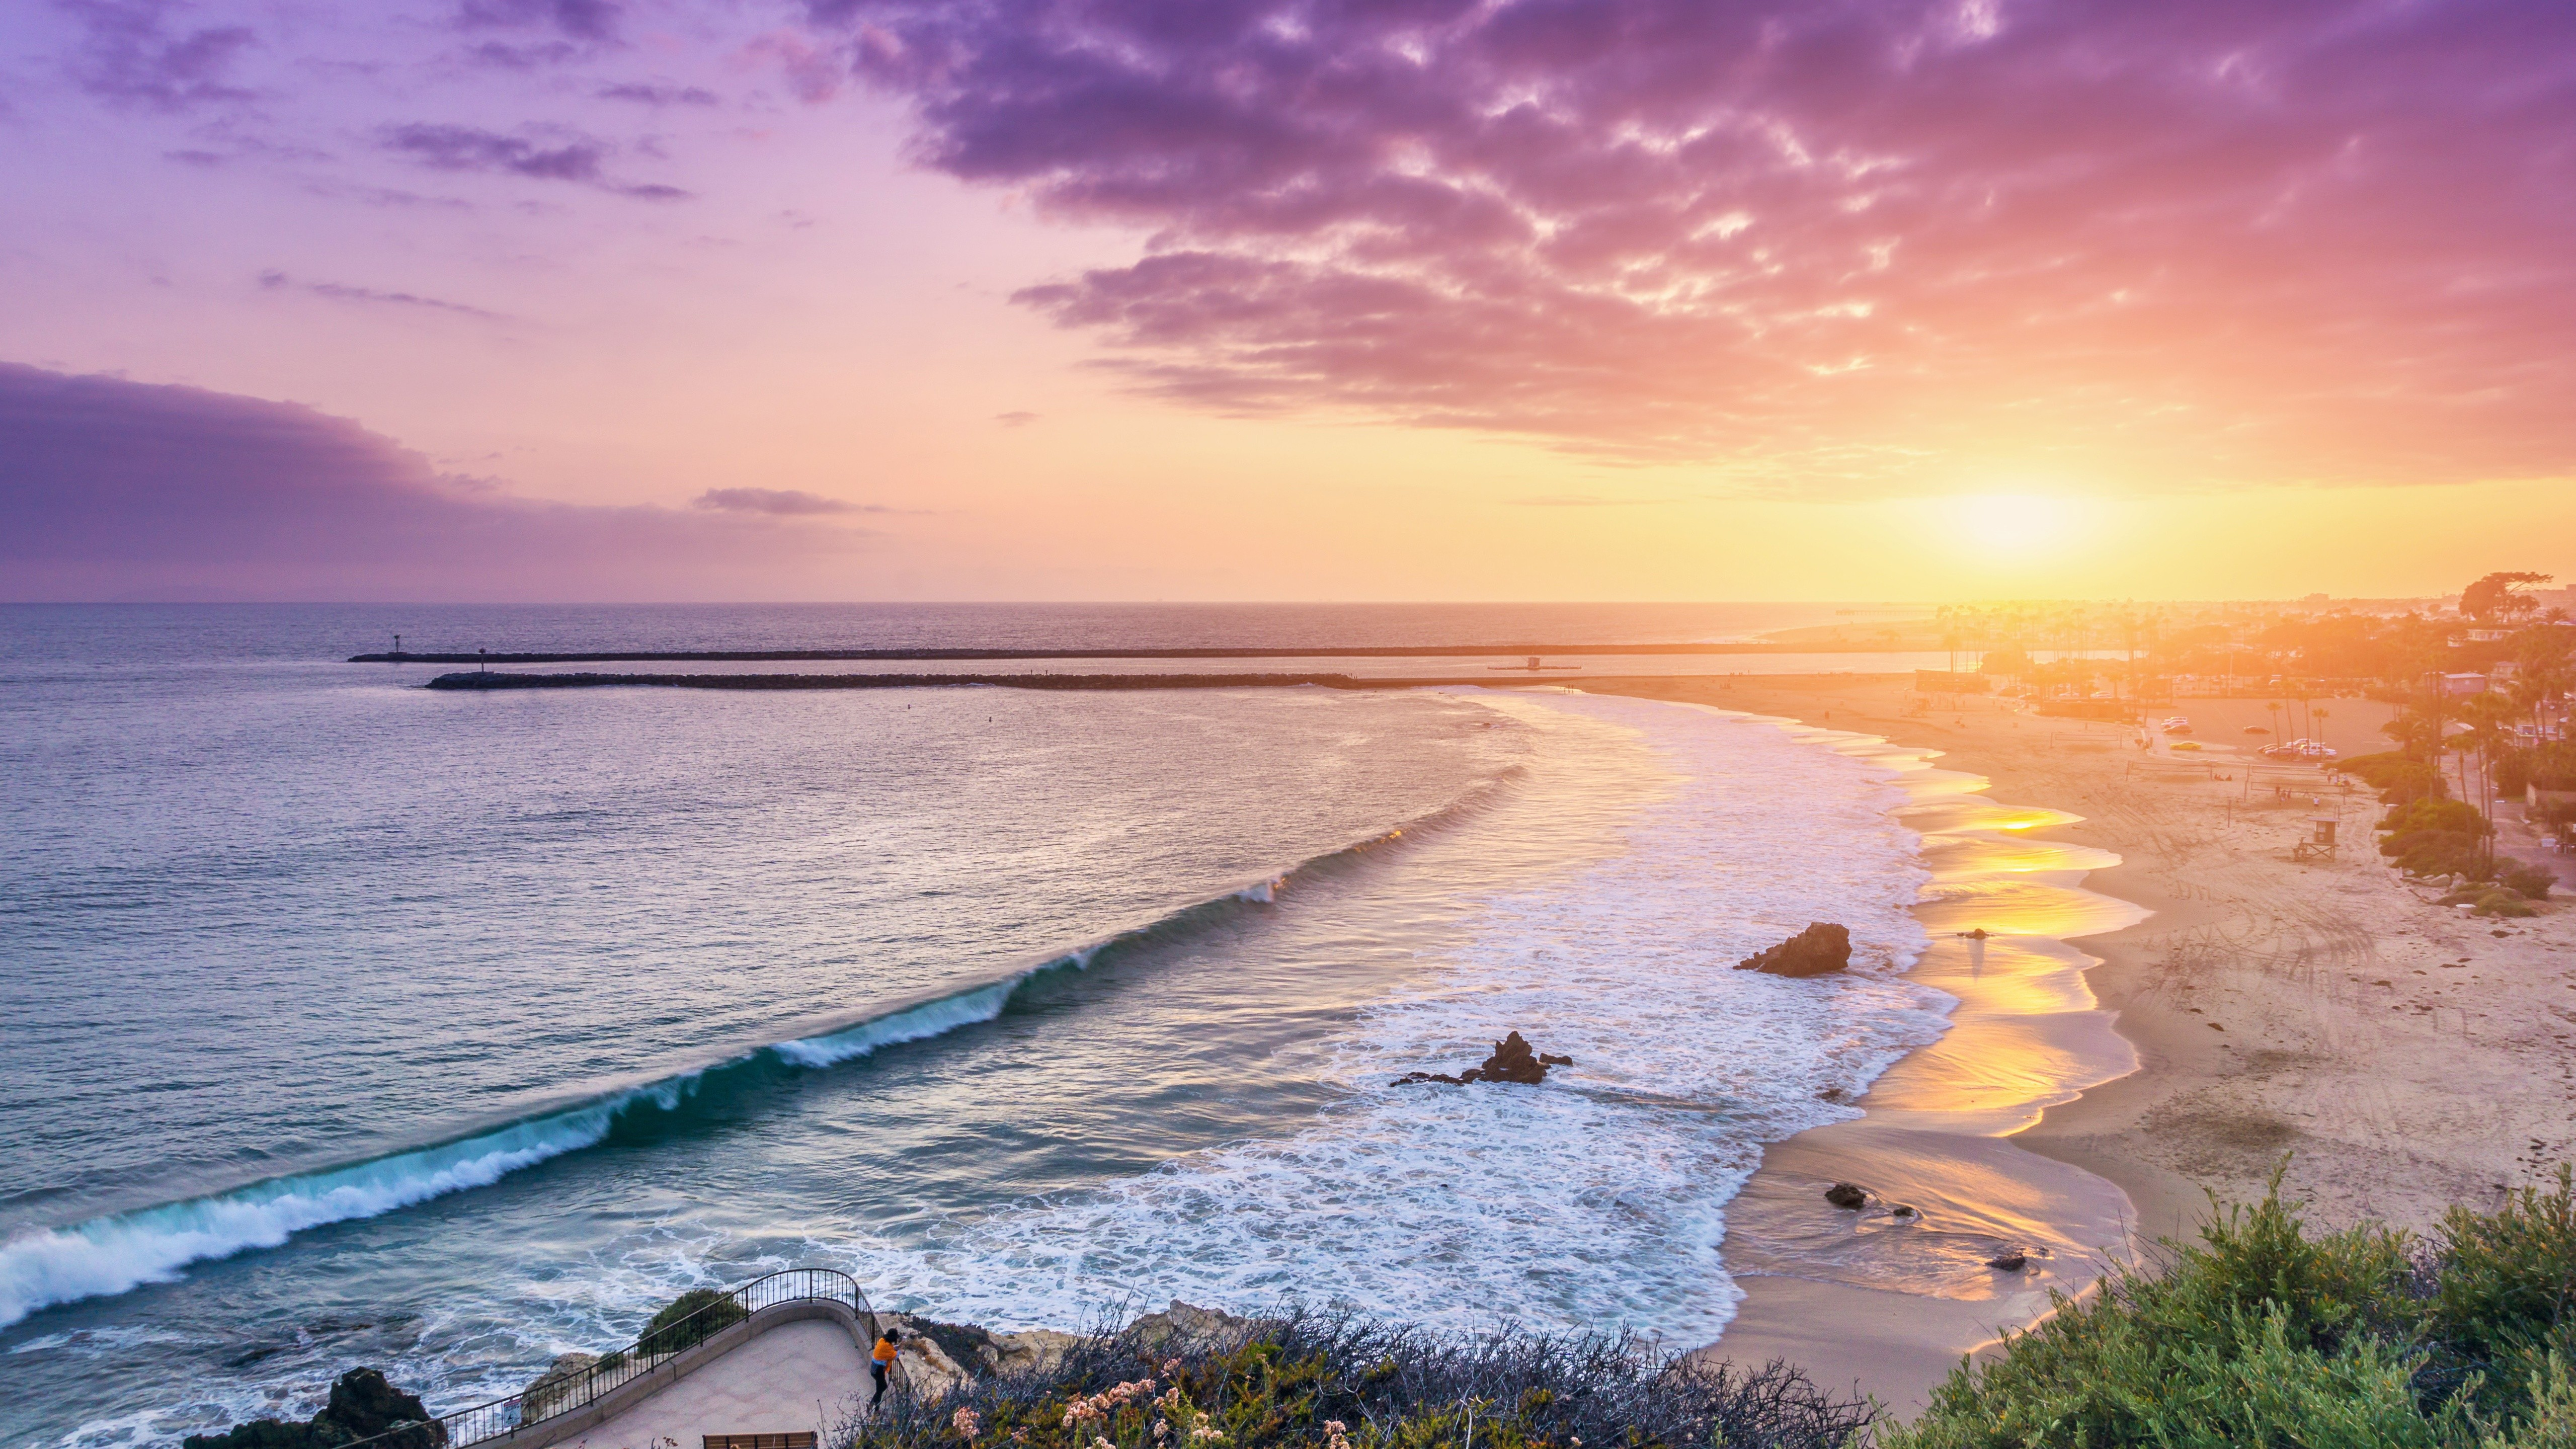 the beach Tripadvisor - travelers' choice awards find out what the best beaches in the united states are as awarded by millions of real travelers.